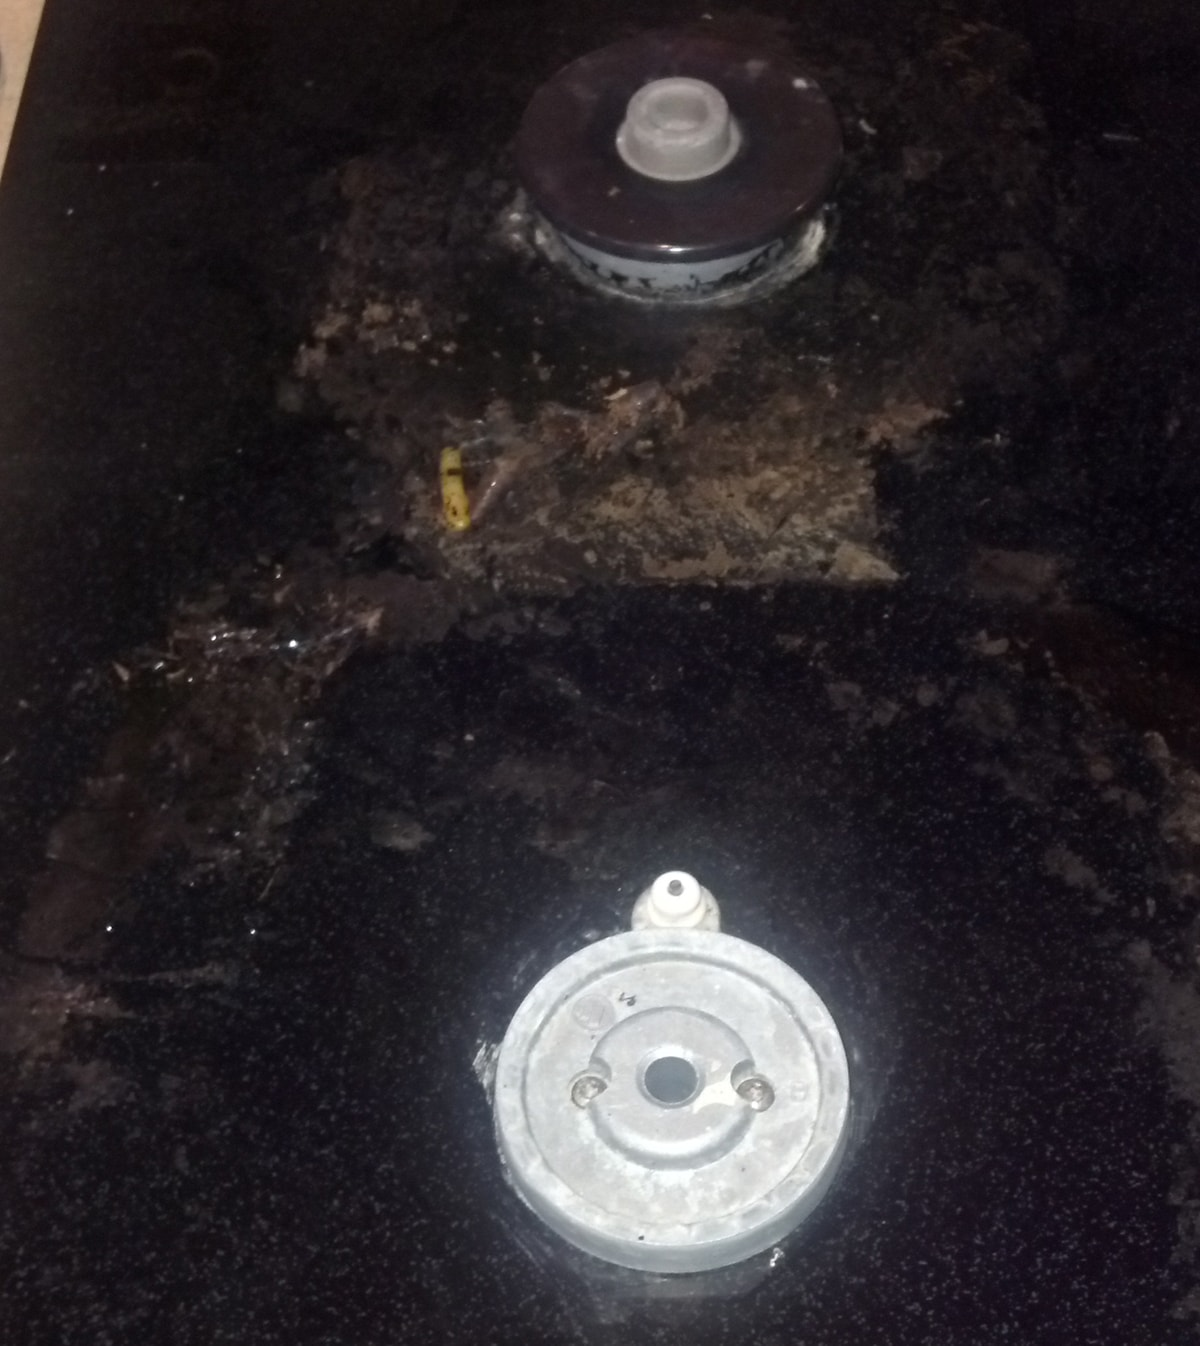 Dirty and damaged surface of a black glass stove and burner.